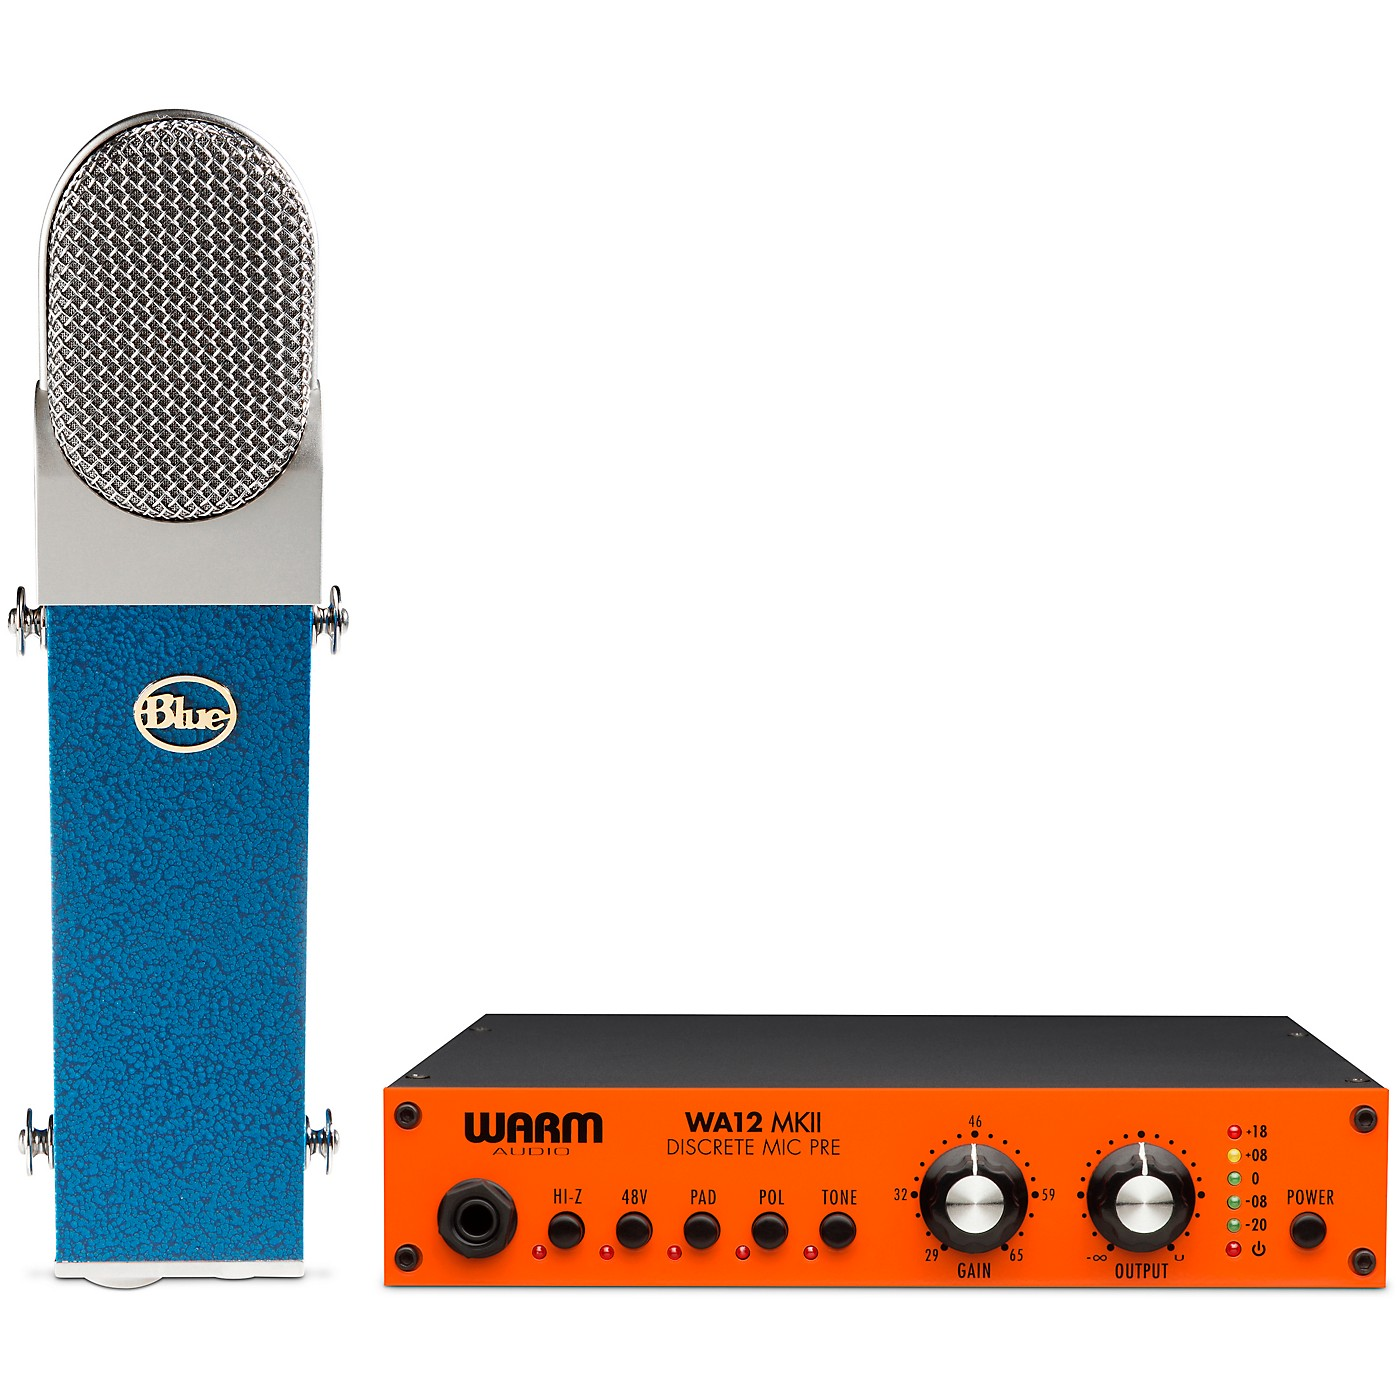 Warm Audio BLUE Blueberry Cardioid Condenser Microphone with Warm Audio WA12 MkII Microphone Preamp thumbnail